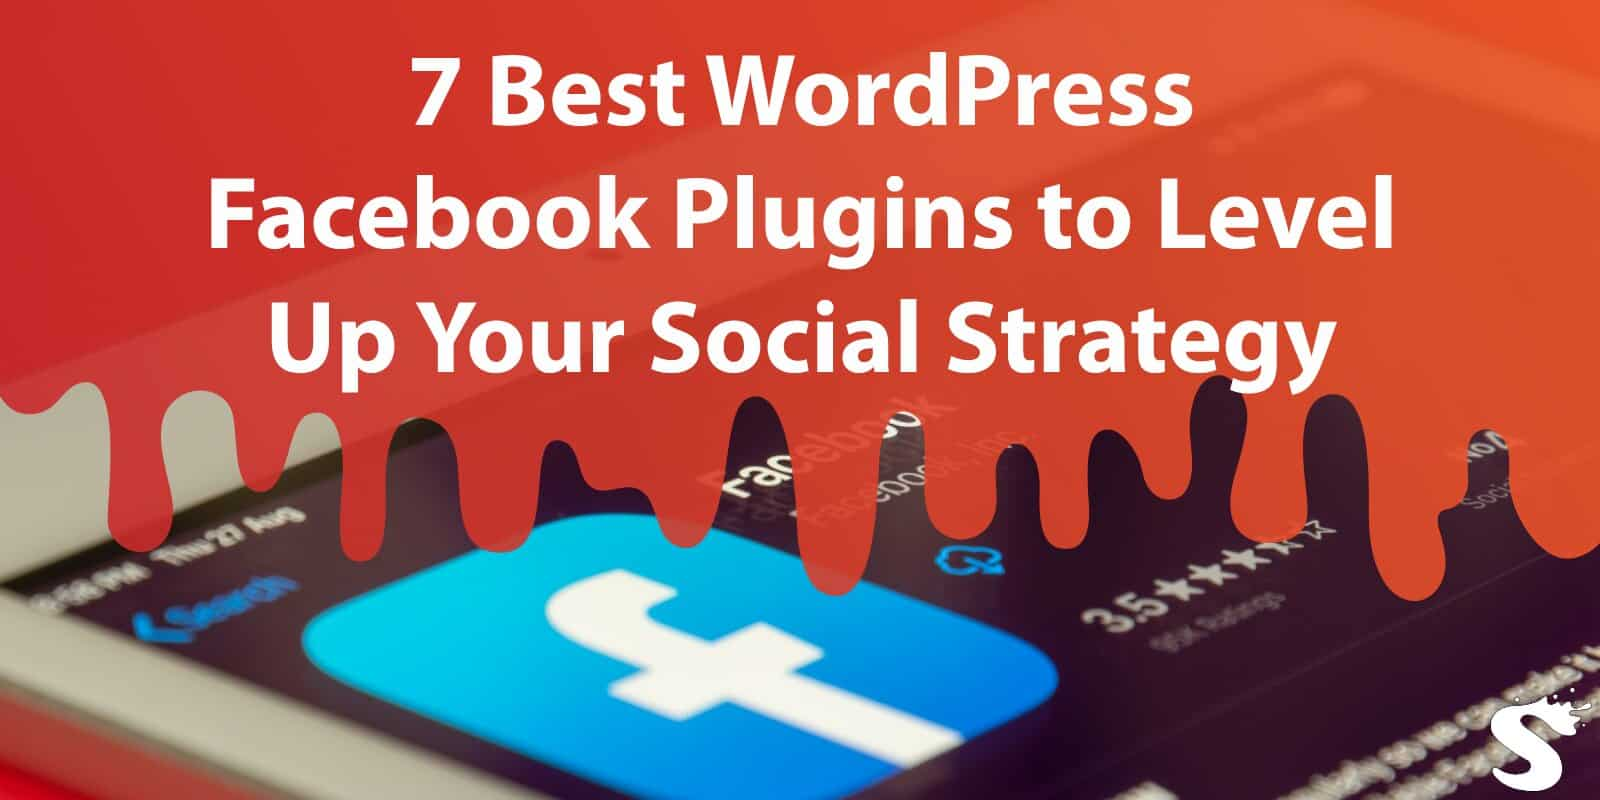 7 Best WordPress Facebook Plugins to Level Up Your Social Strategy